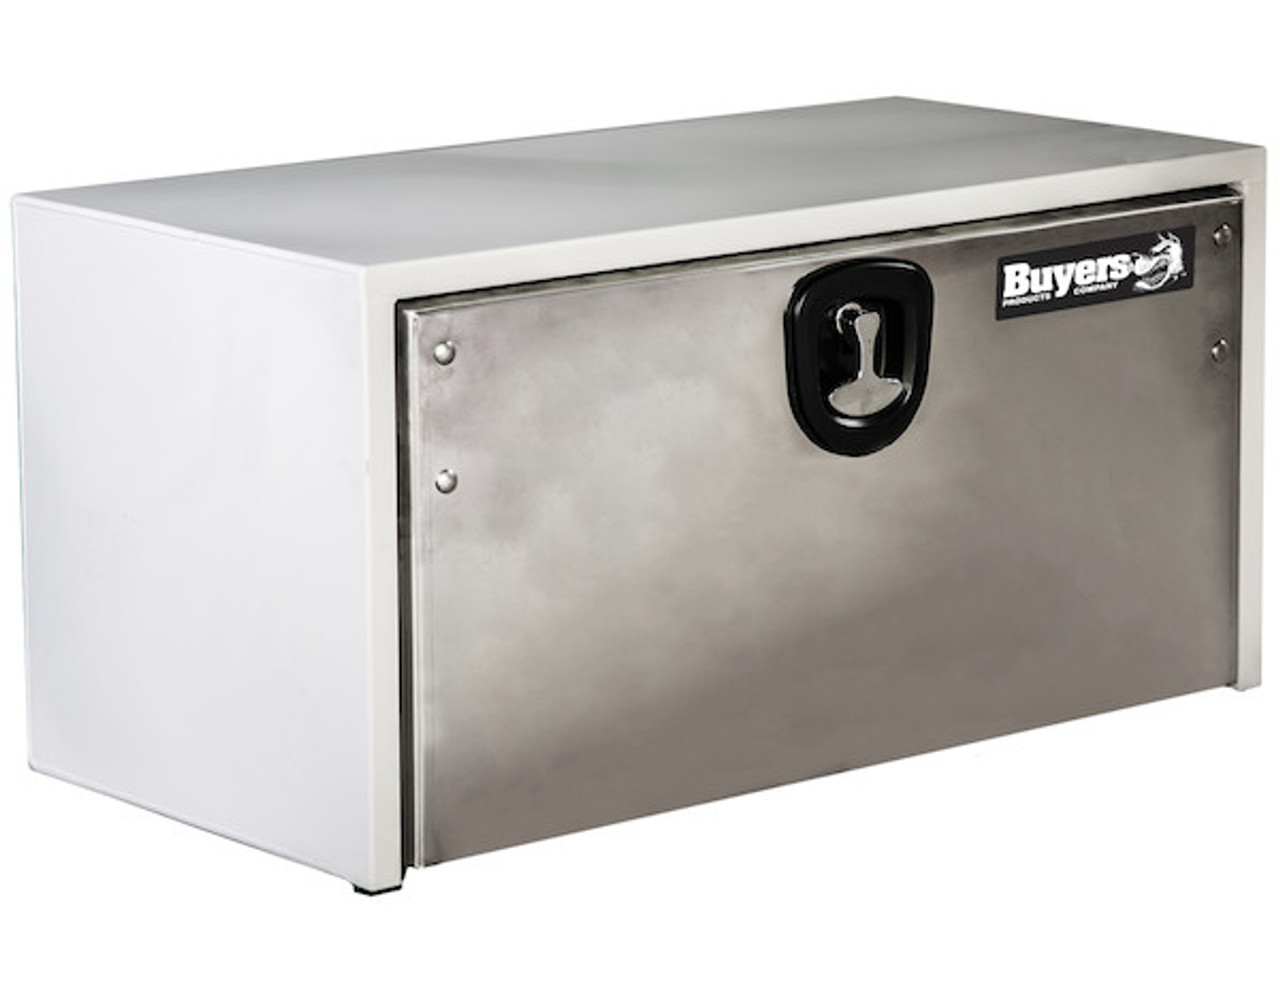 1702815 BUYERS PRODUCTS WHITE STEEL UNDERBODY TRUCK BOX WITH STAINLESS DOOR TOOLBOX